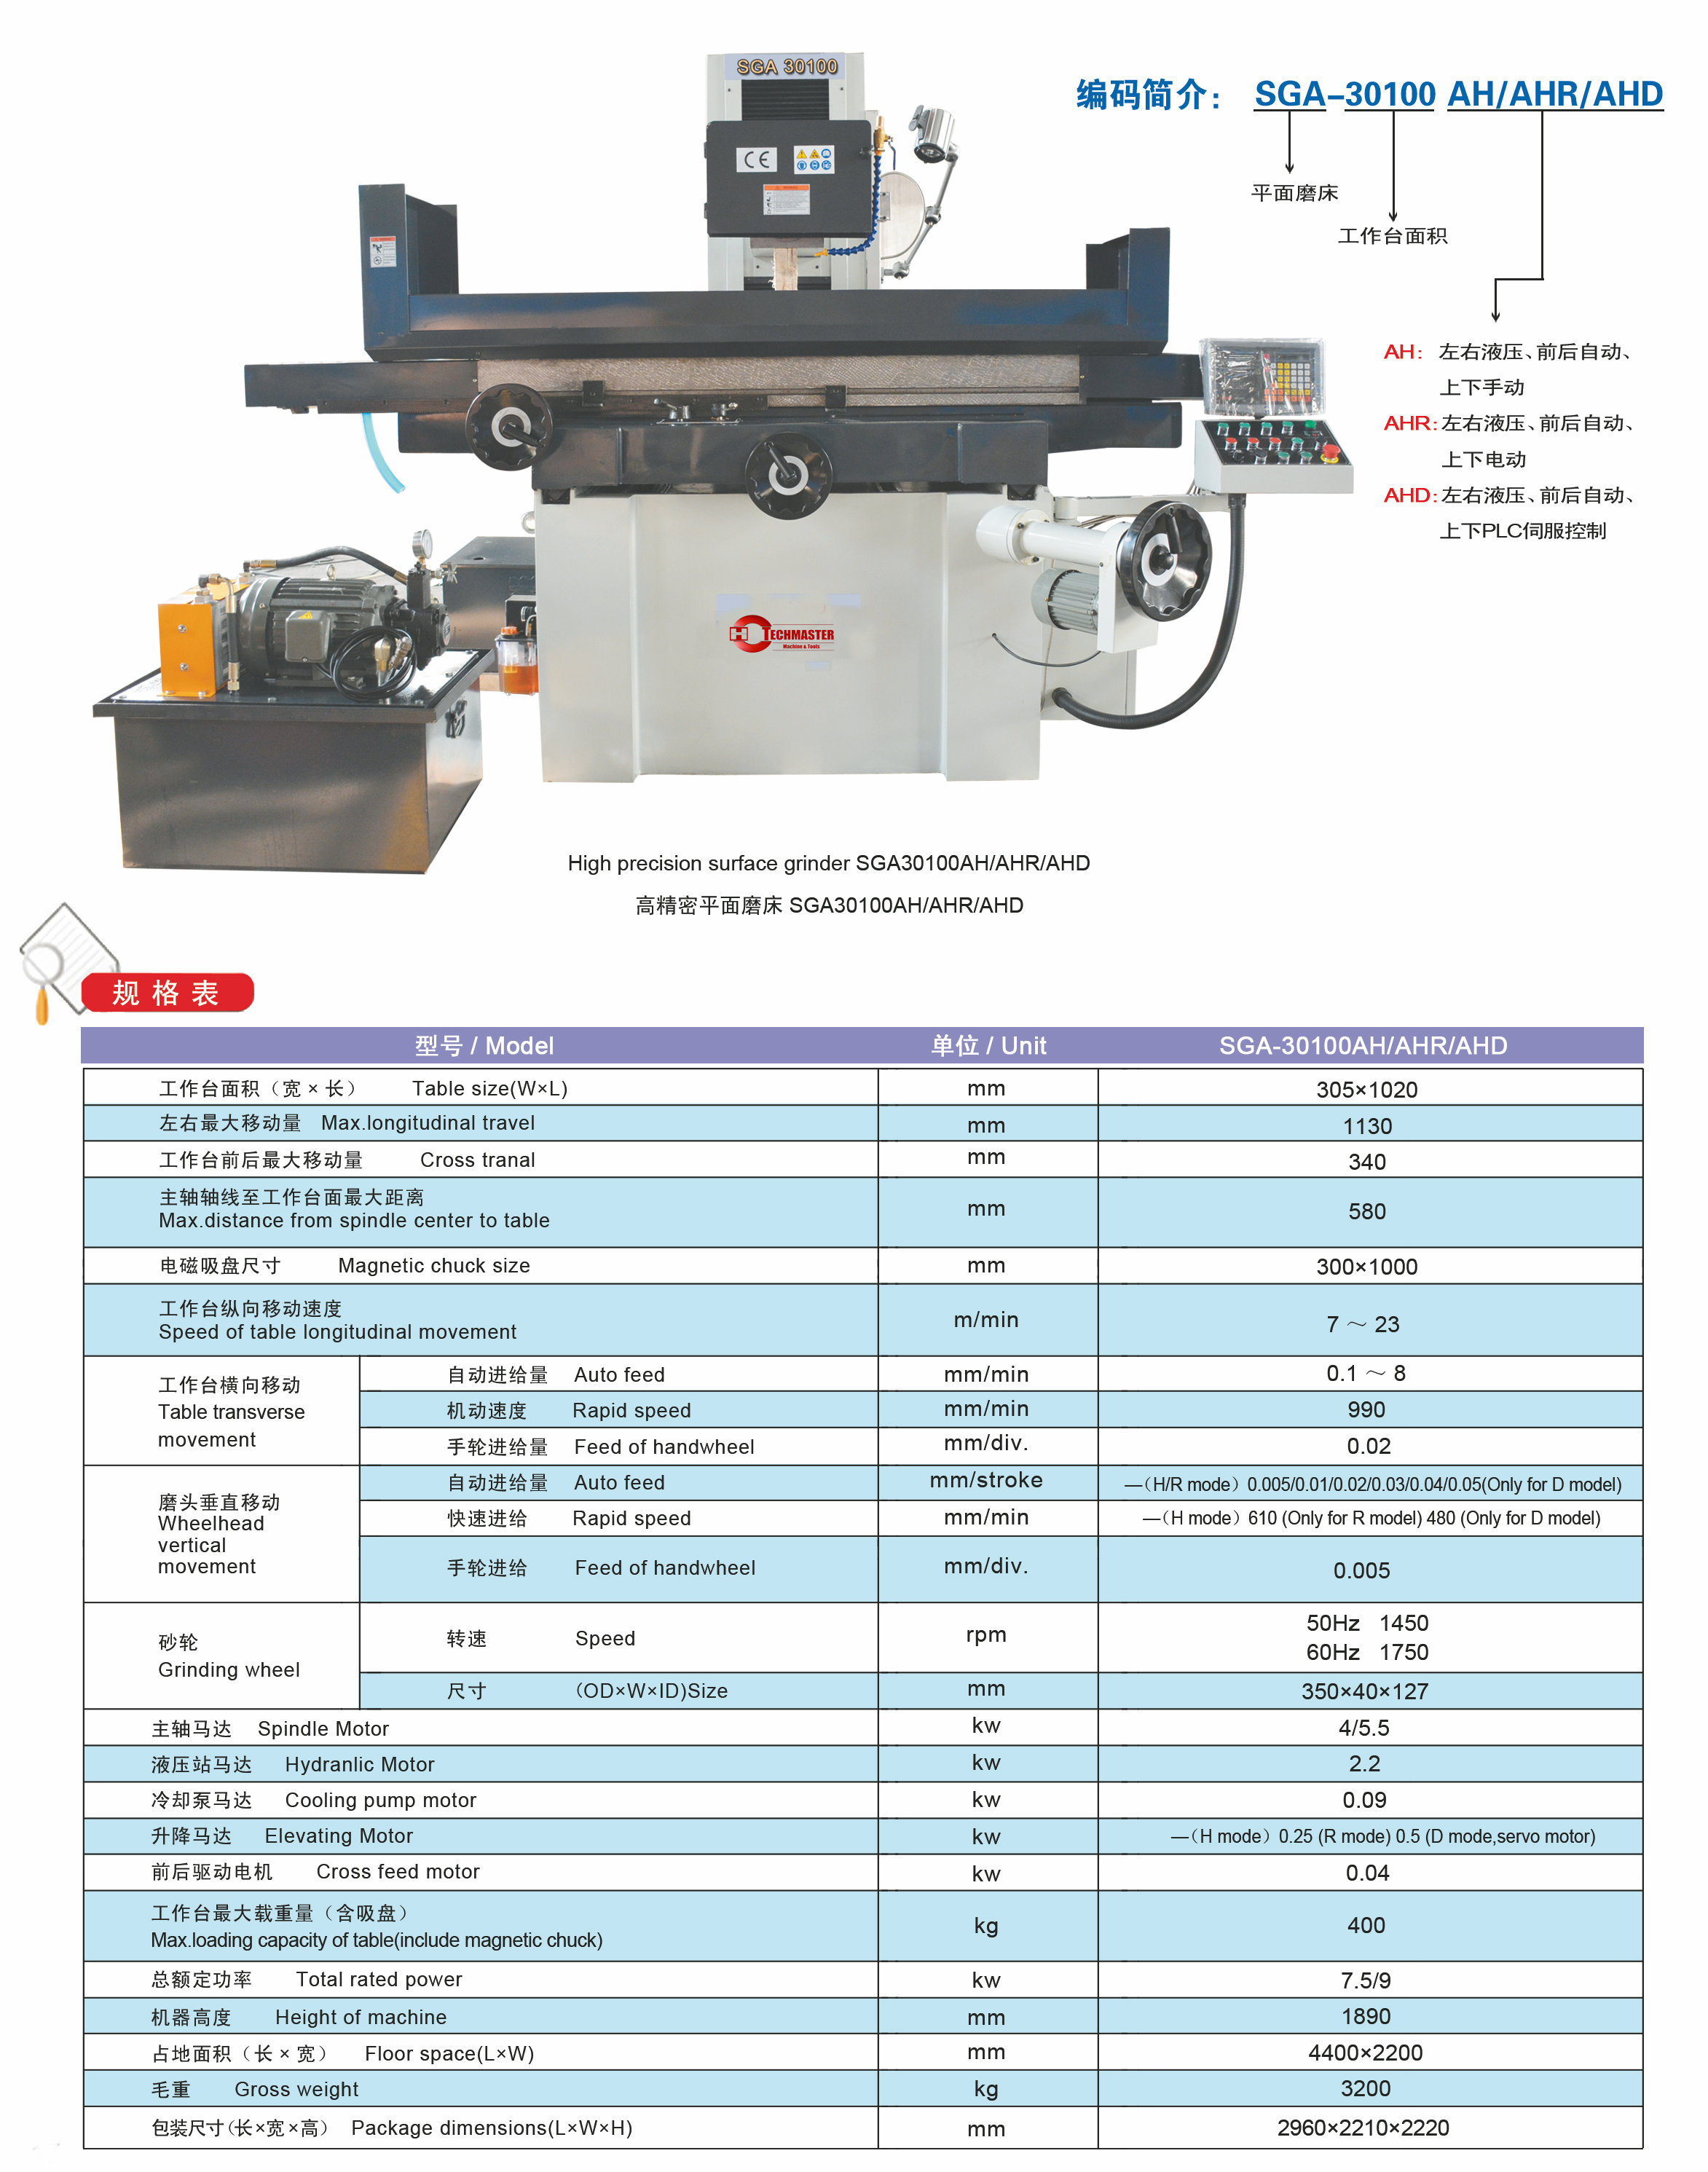 HIGH PRECISION SURFACE GRINDER SGA SERIES SGA-30100AH/AHR/AHD